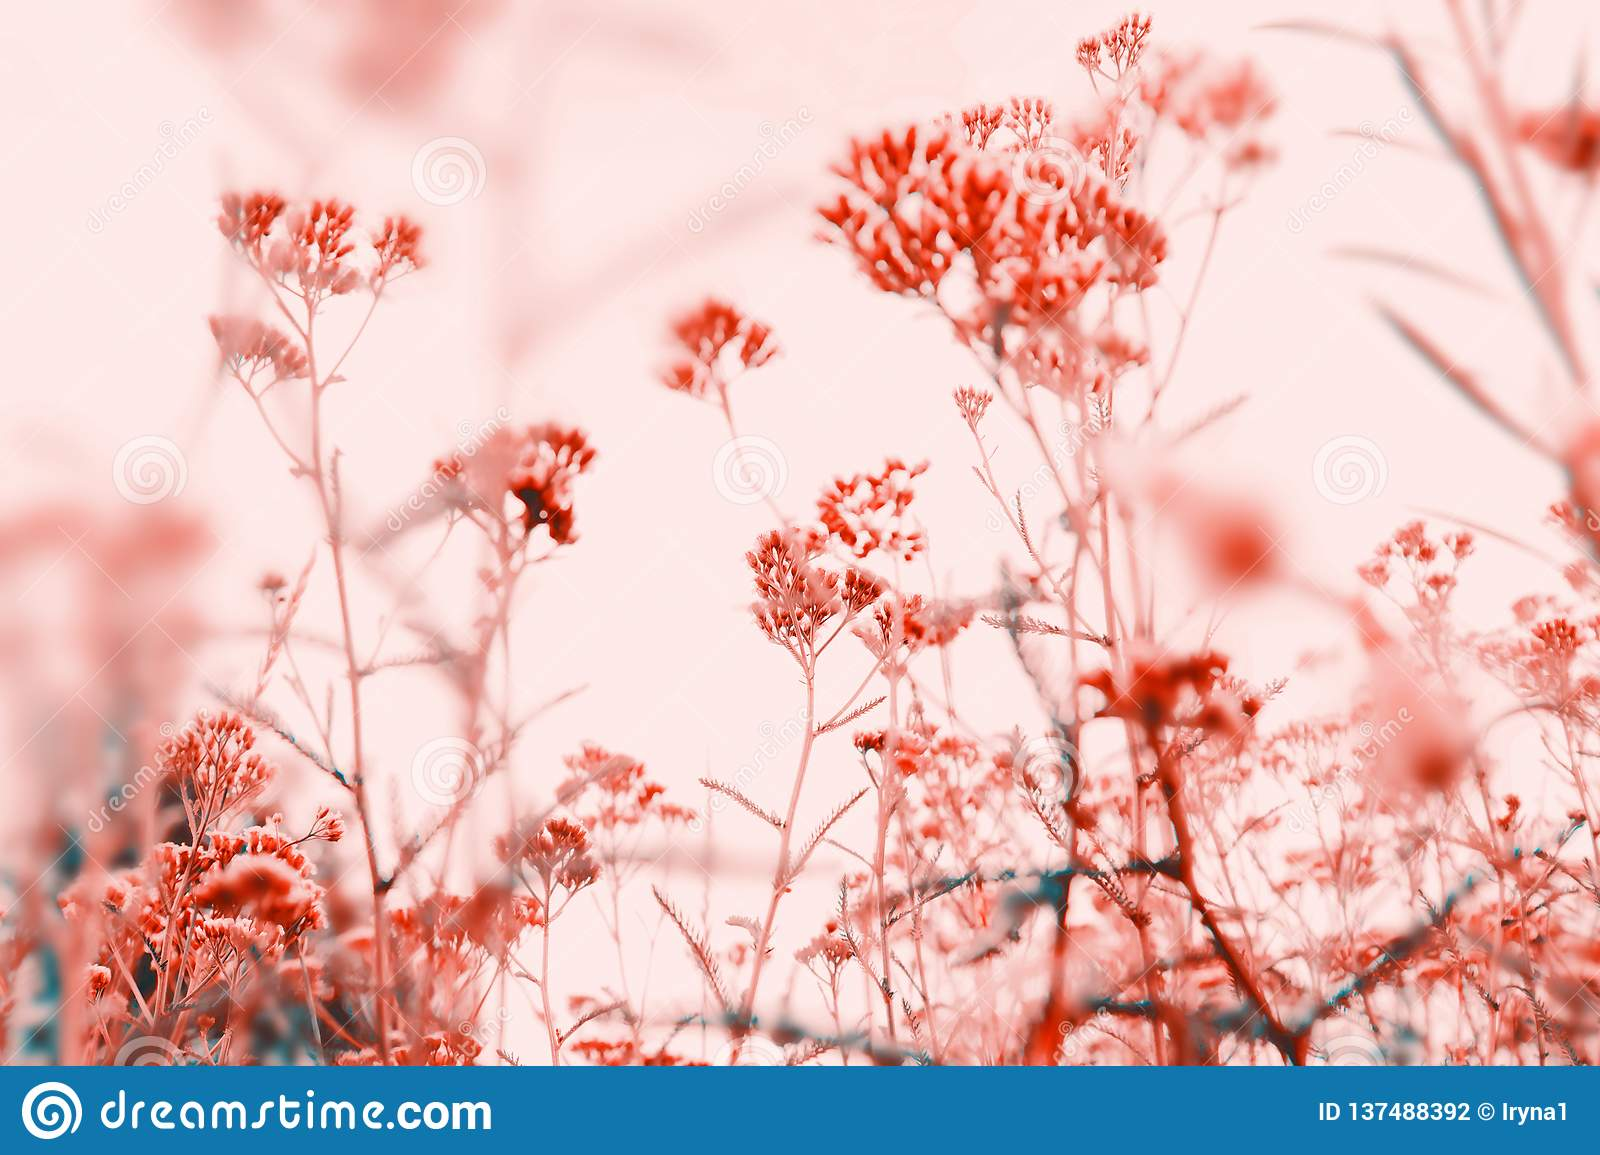 Beautiful Nature Pastel Floral Background Stock Photo Image Of